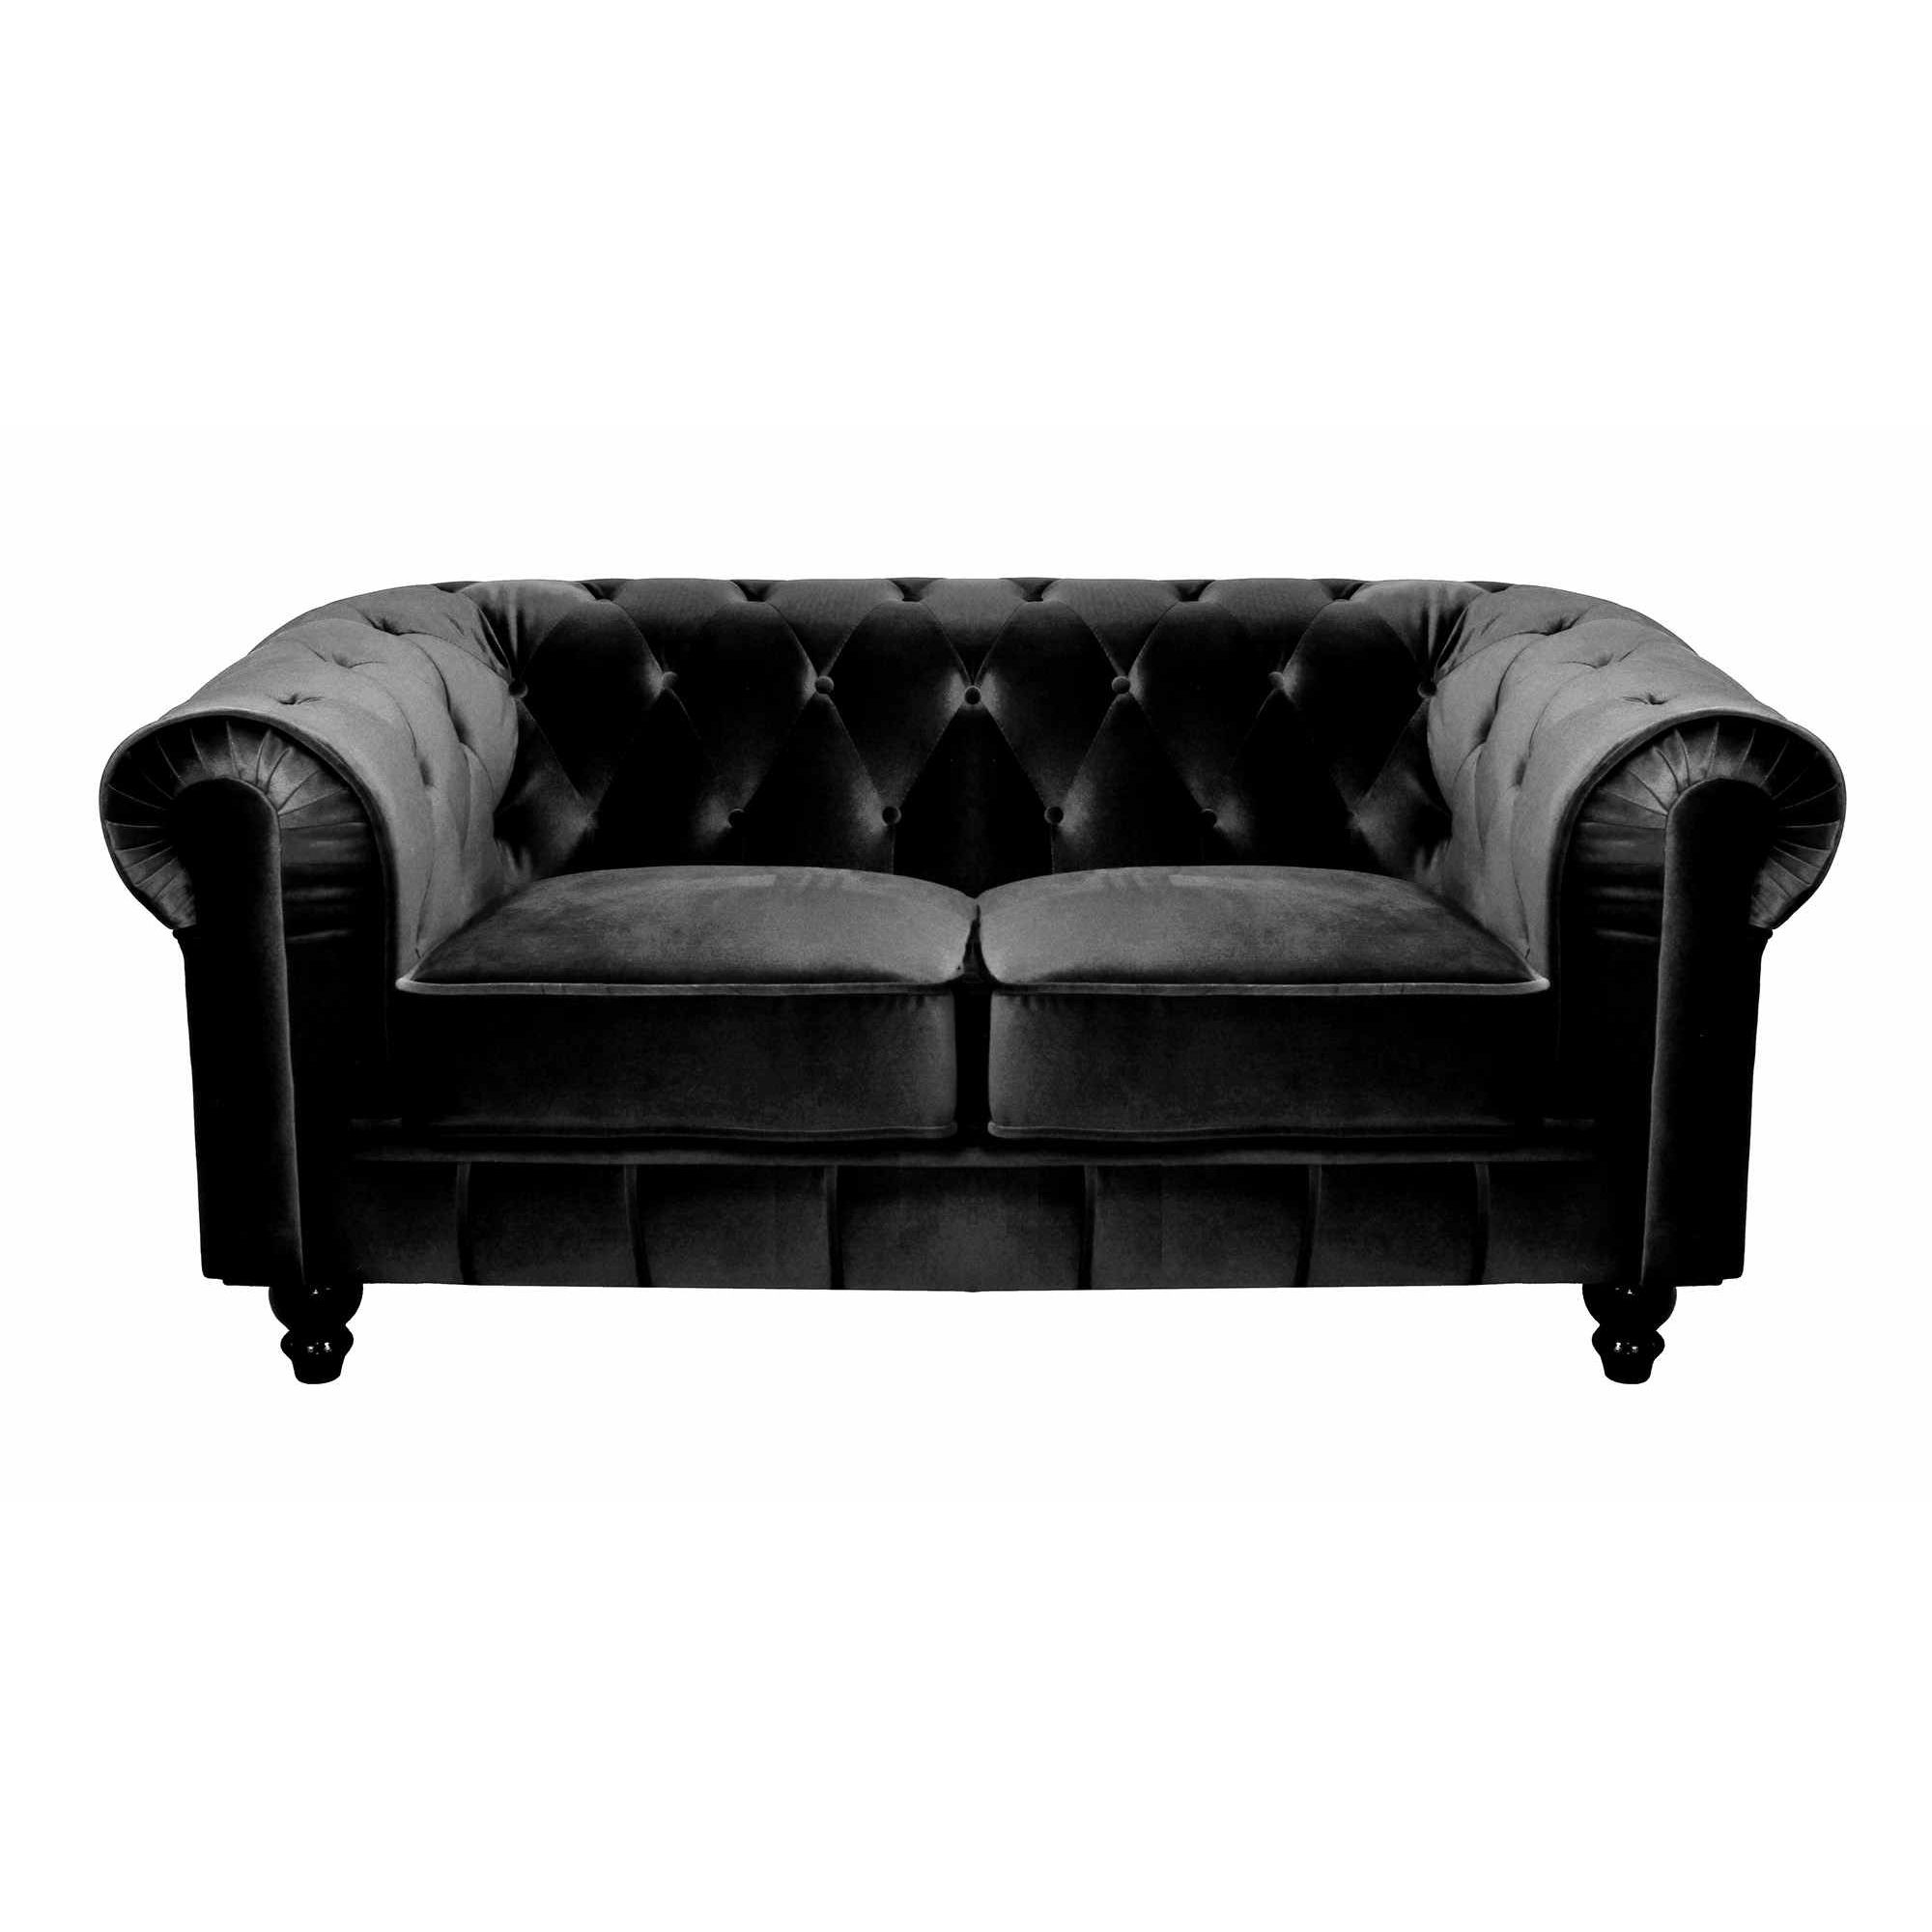 deco in paris canape 2 places velours noir chesterfield. Black Bedroom Furniture Sets. Home Design Ideas